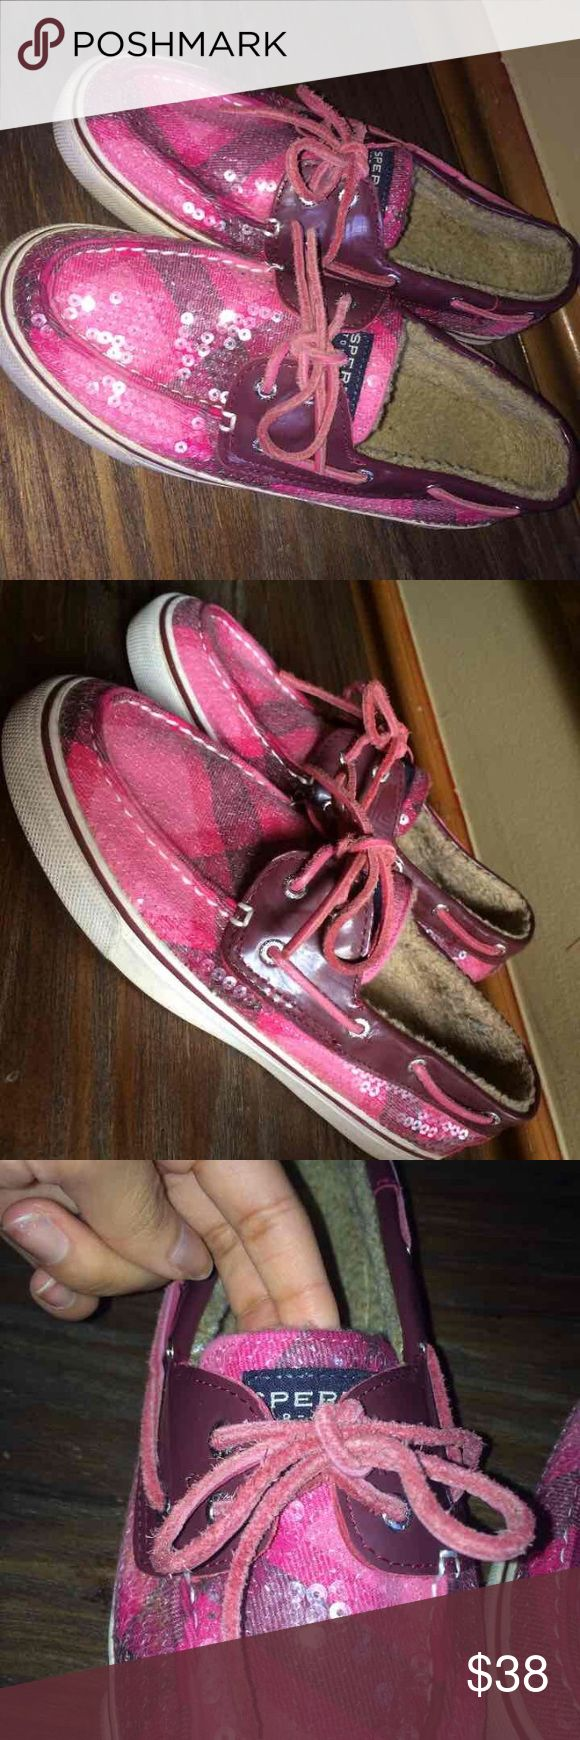 Pink Sperrys Worn only like twice 👍🏽 very cute & comfy Sperry Top-Sider Shoes Flats & Loafers